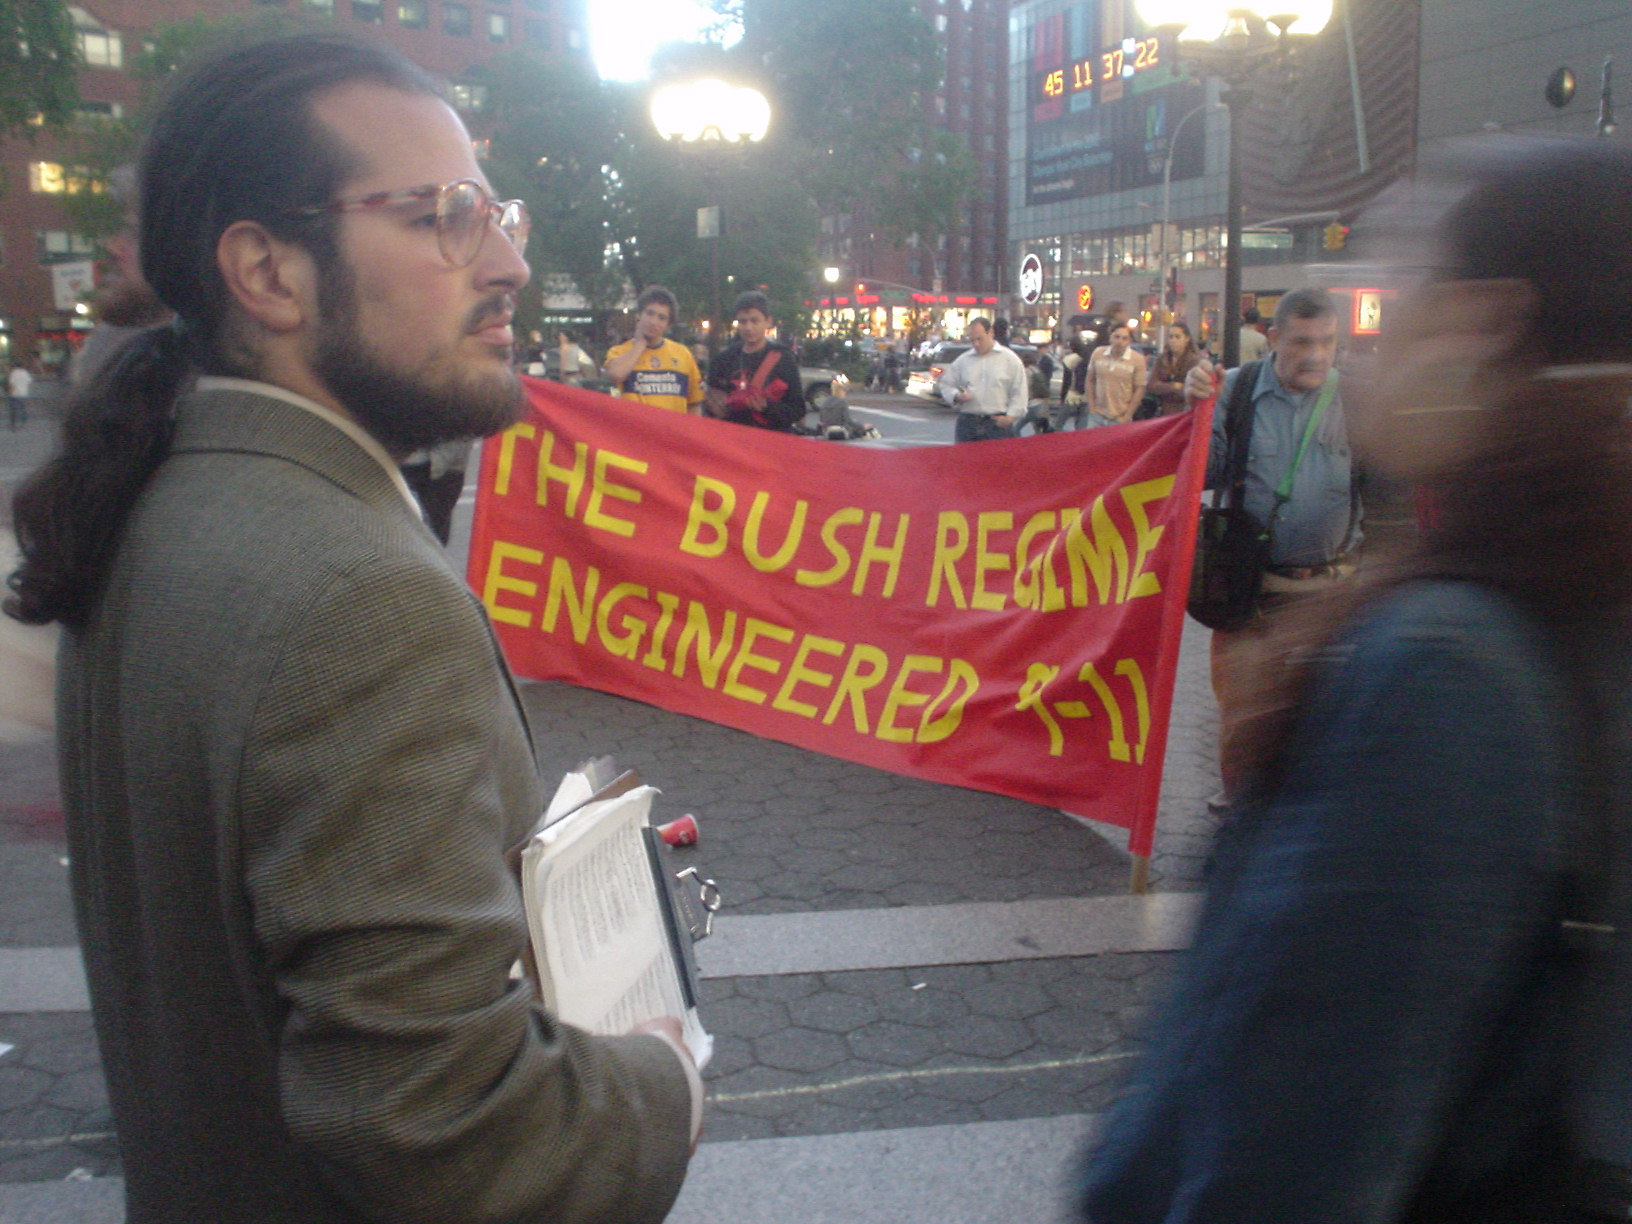 Jason Blank with BOSH REGIME ENGINEERED 9-11 banner